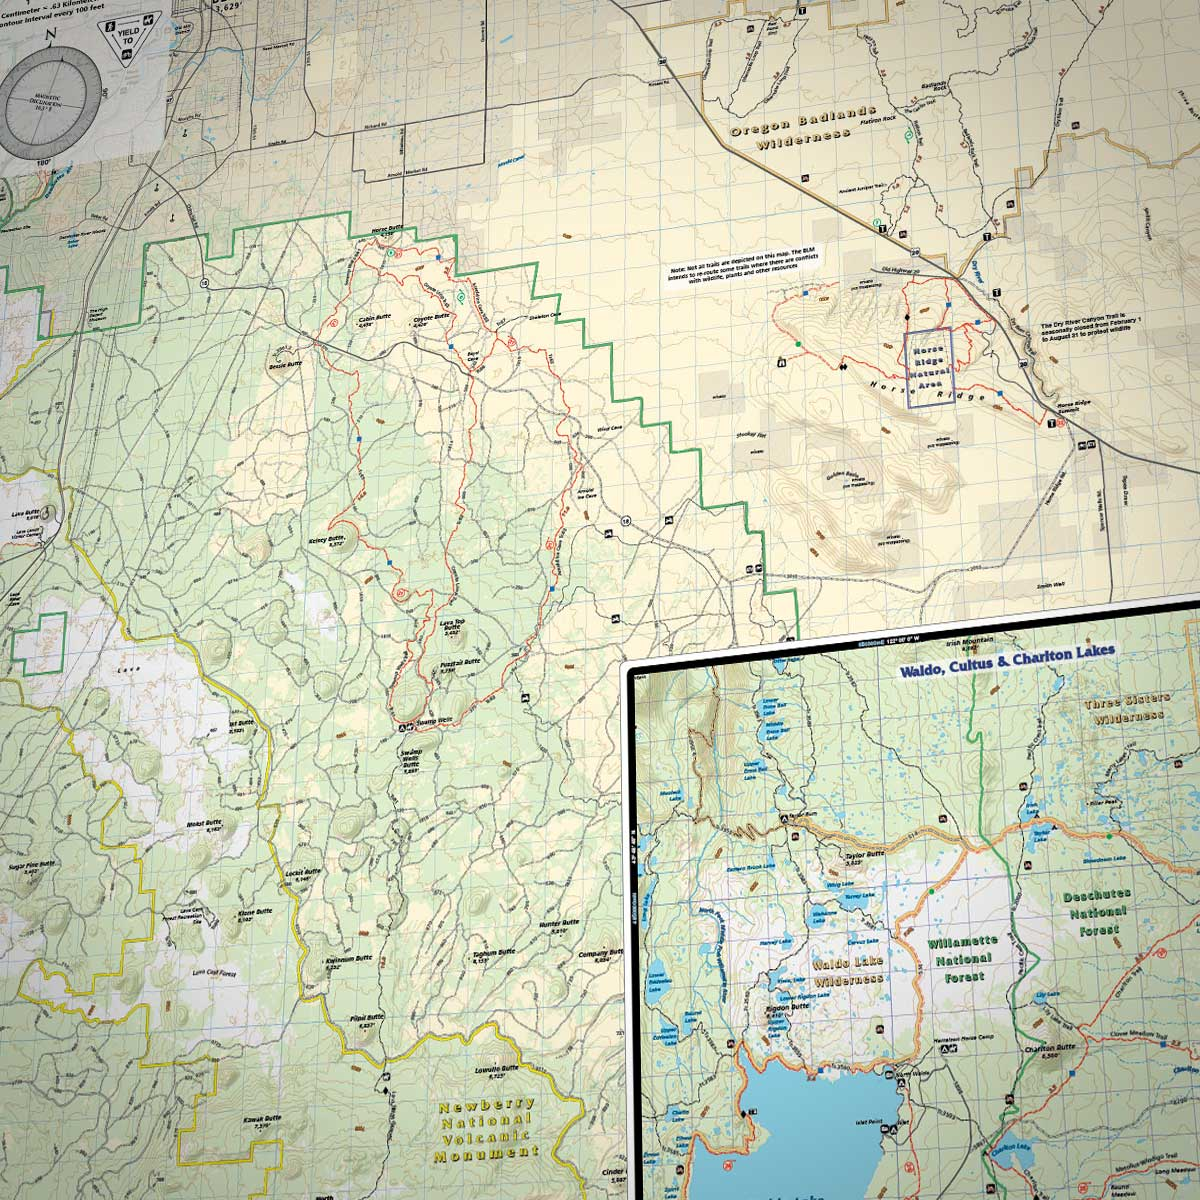 Bend Trails Adventure Map » Bend Trails Gear on